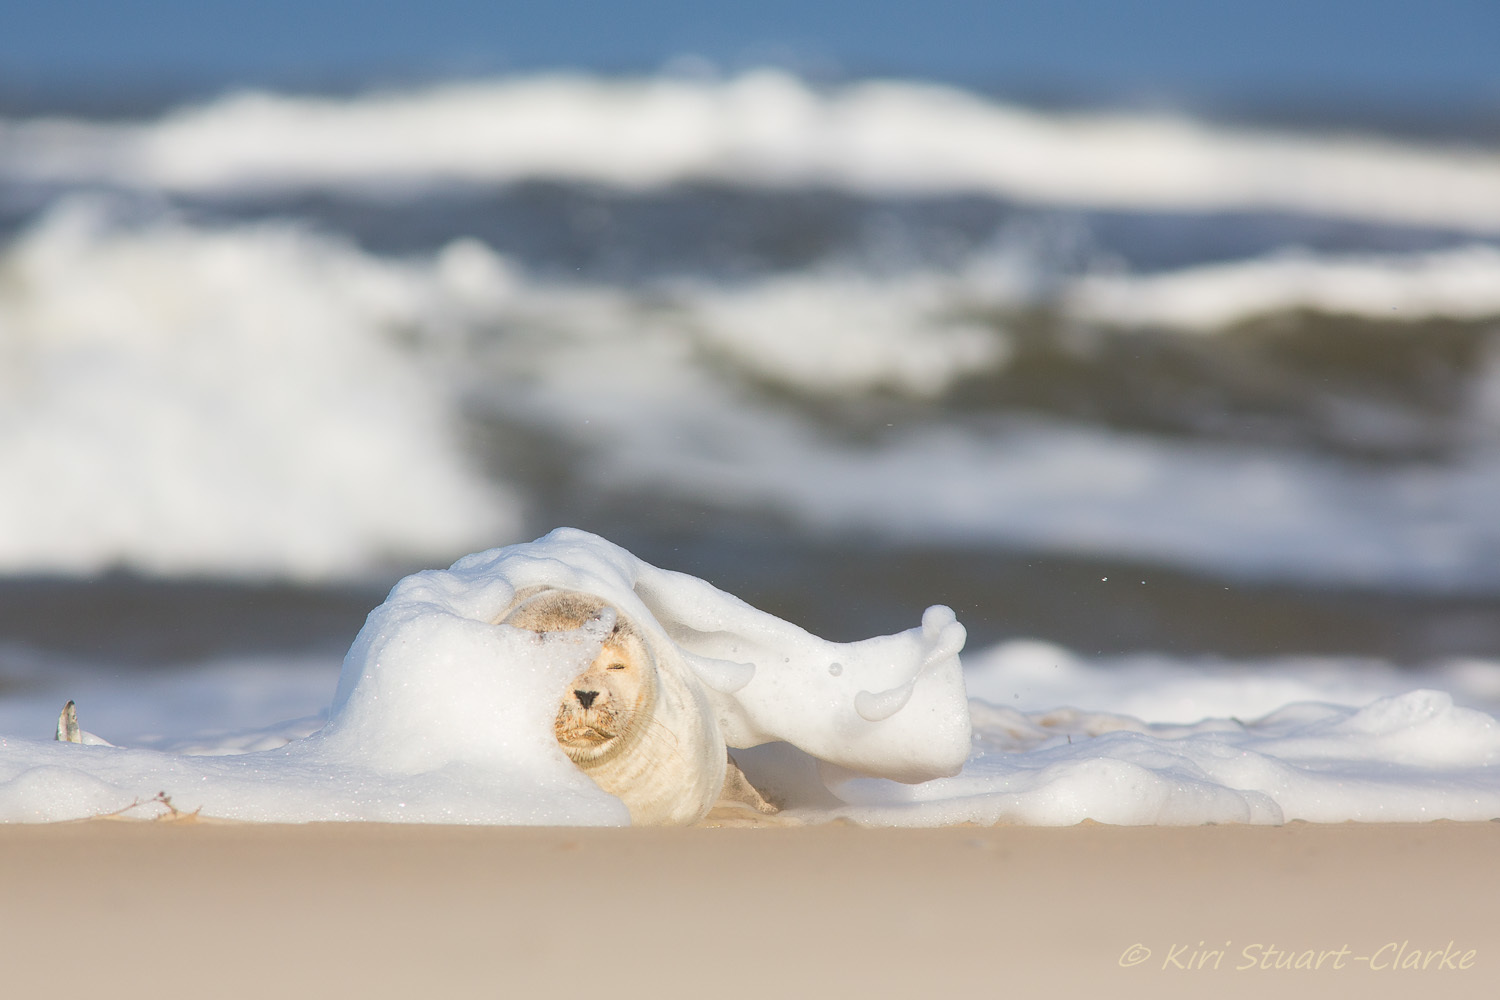 A basking juvenlie common seal is engulfed by a foamy white wave breaking on the sandy beach